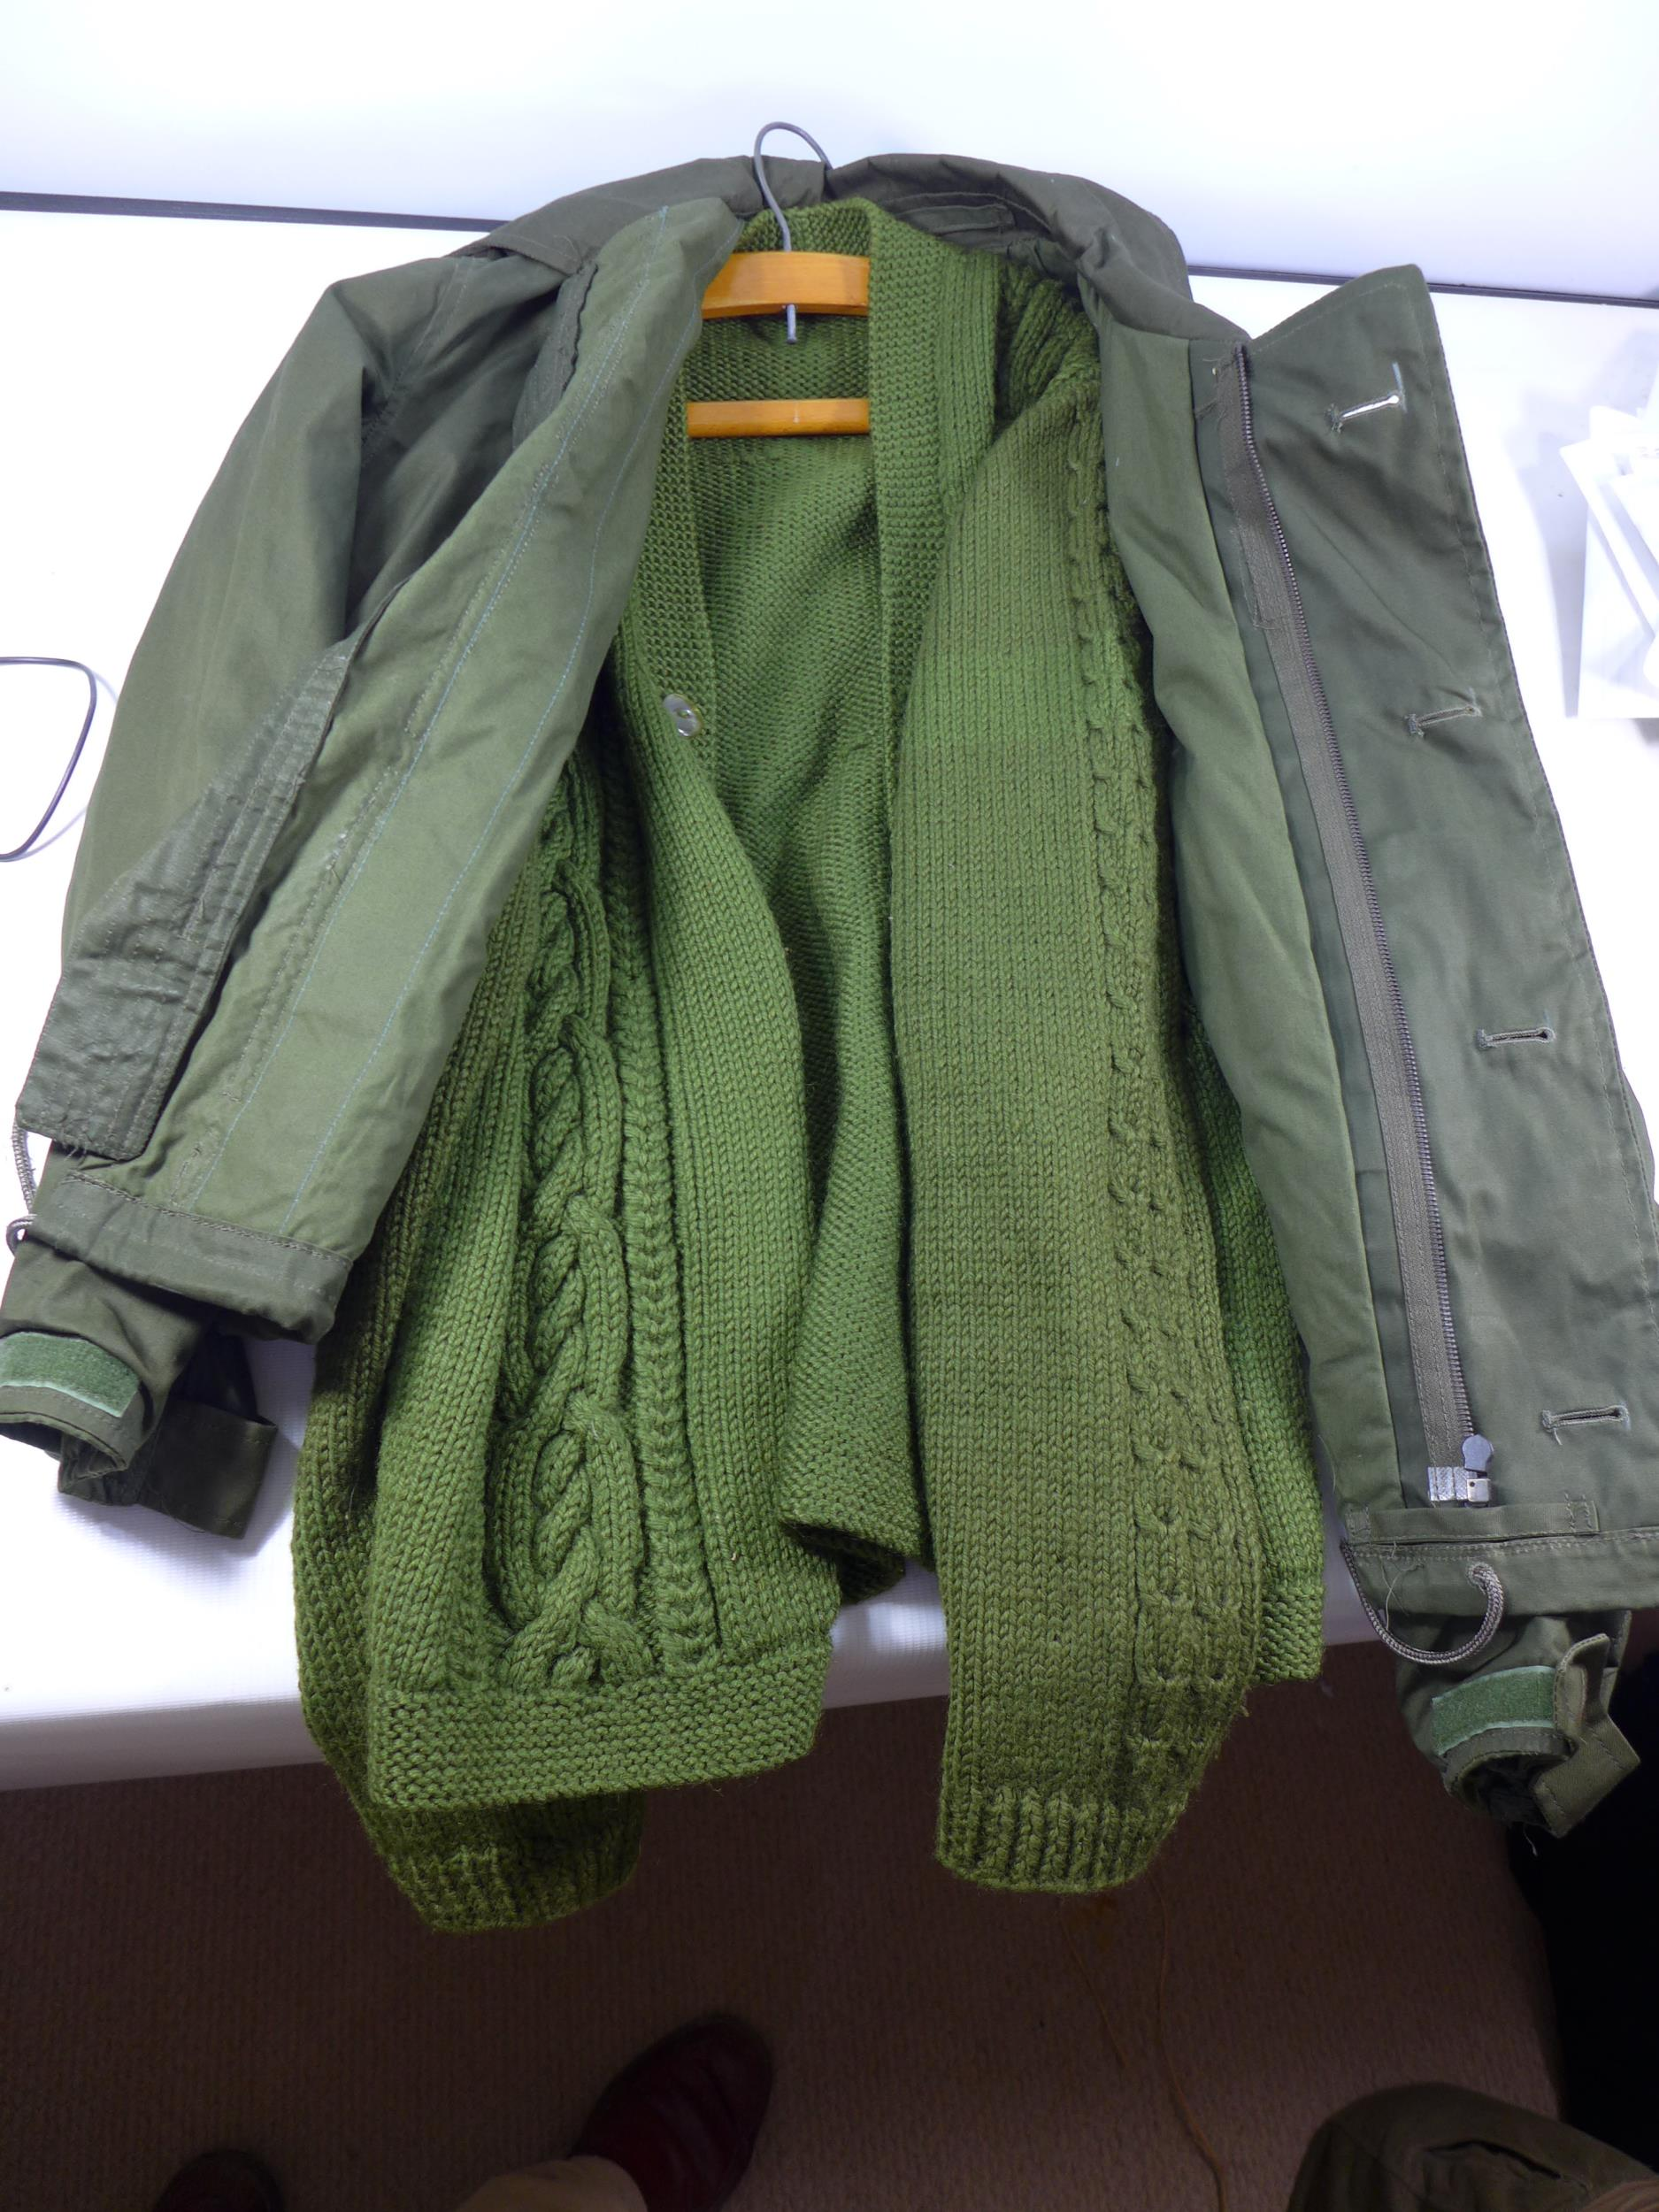 A CAMOUFLAGE SMOCK COMBAT UNIFORM, SIZE S COMPRISING OF A COAT AND TROUSERS, HAT ETC ALSO A - Image 4 of 4